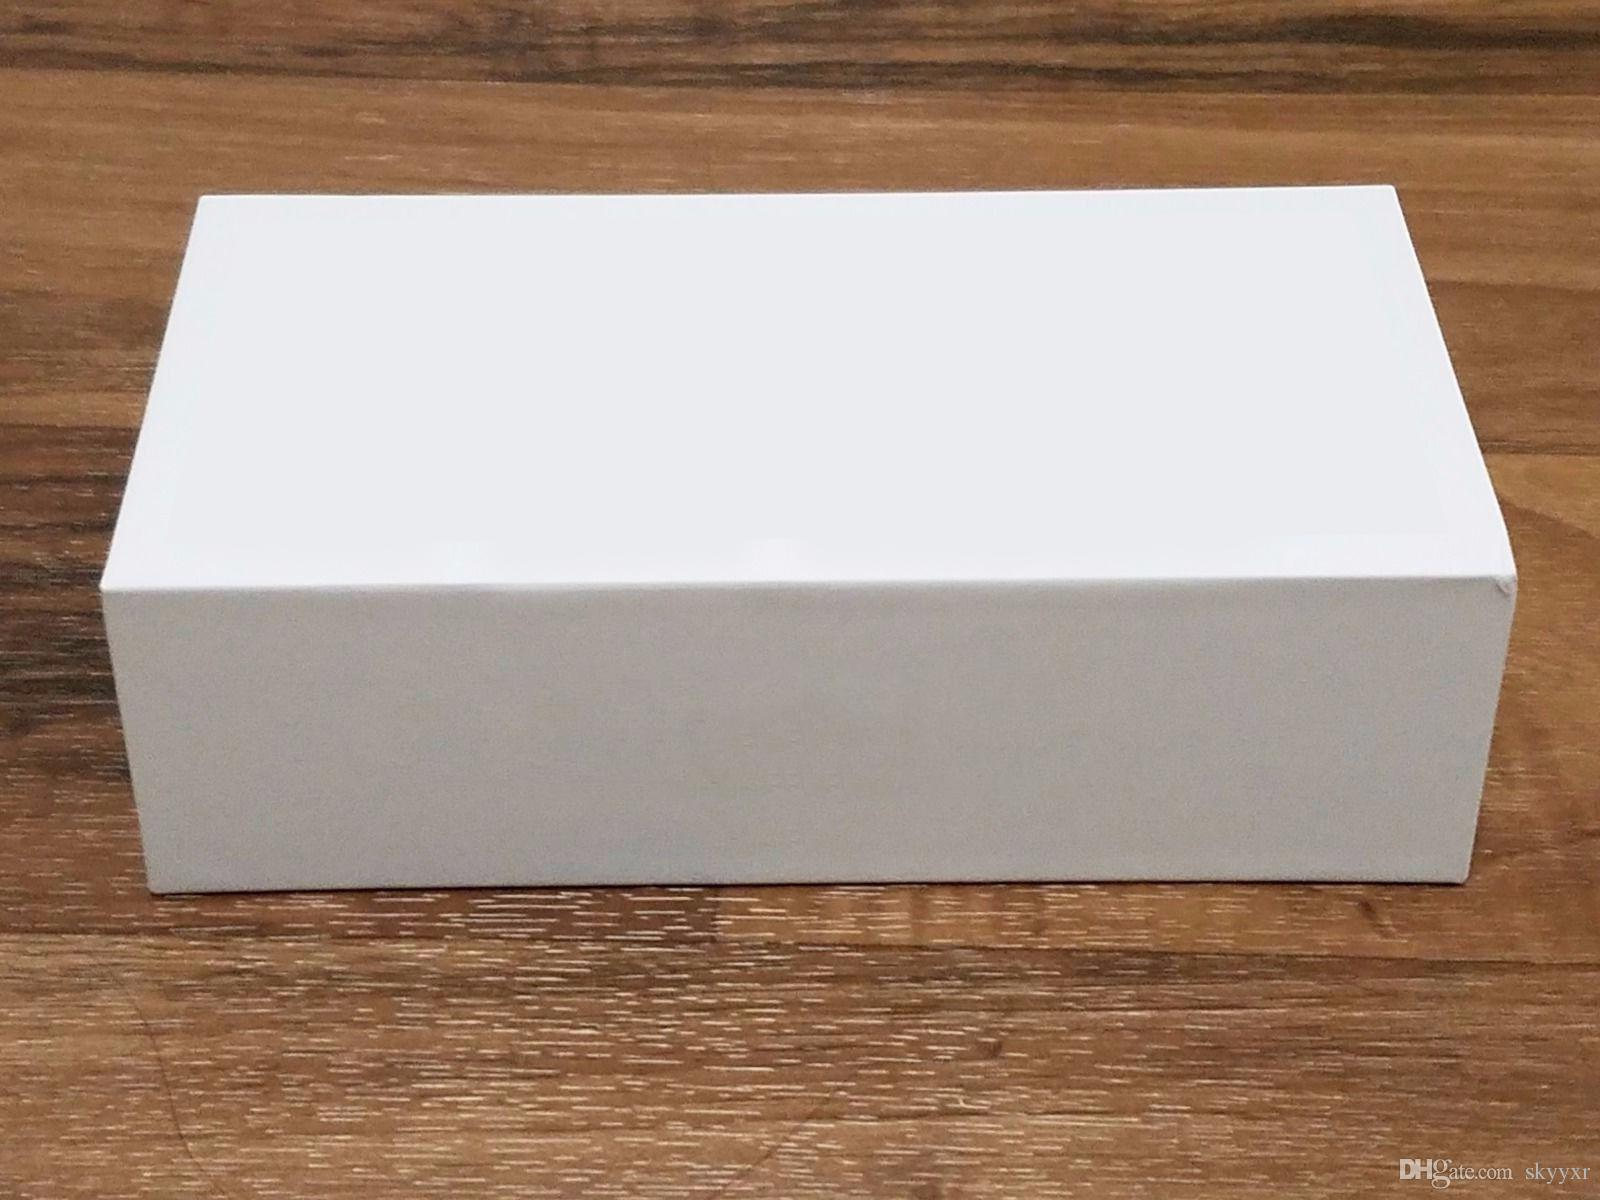 New Empty Retail Boxes for iphone 5 5s SE 5c 6 6s 7 plus Mobile phone box for samsung Galaxy S4 S5 S6 S7 Edge Plus